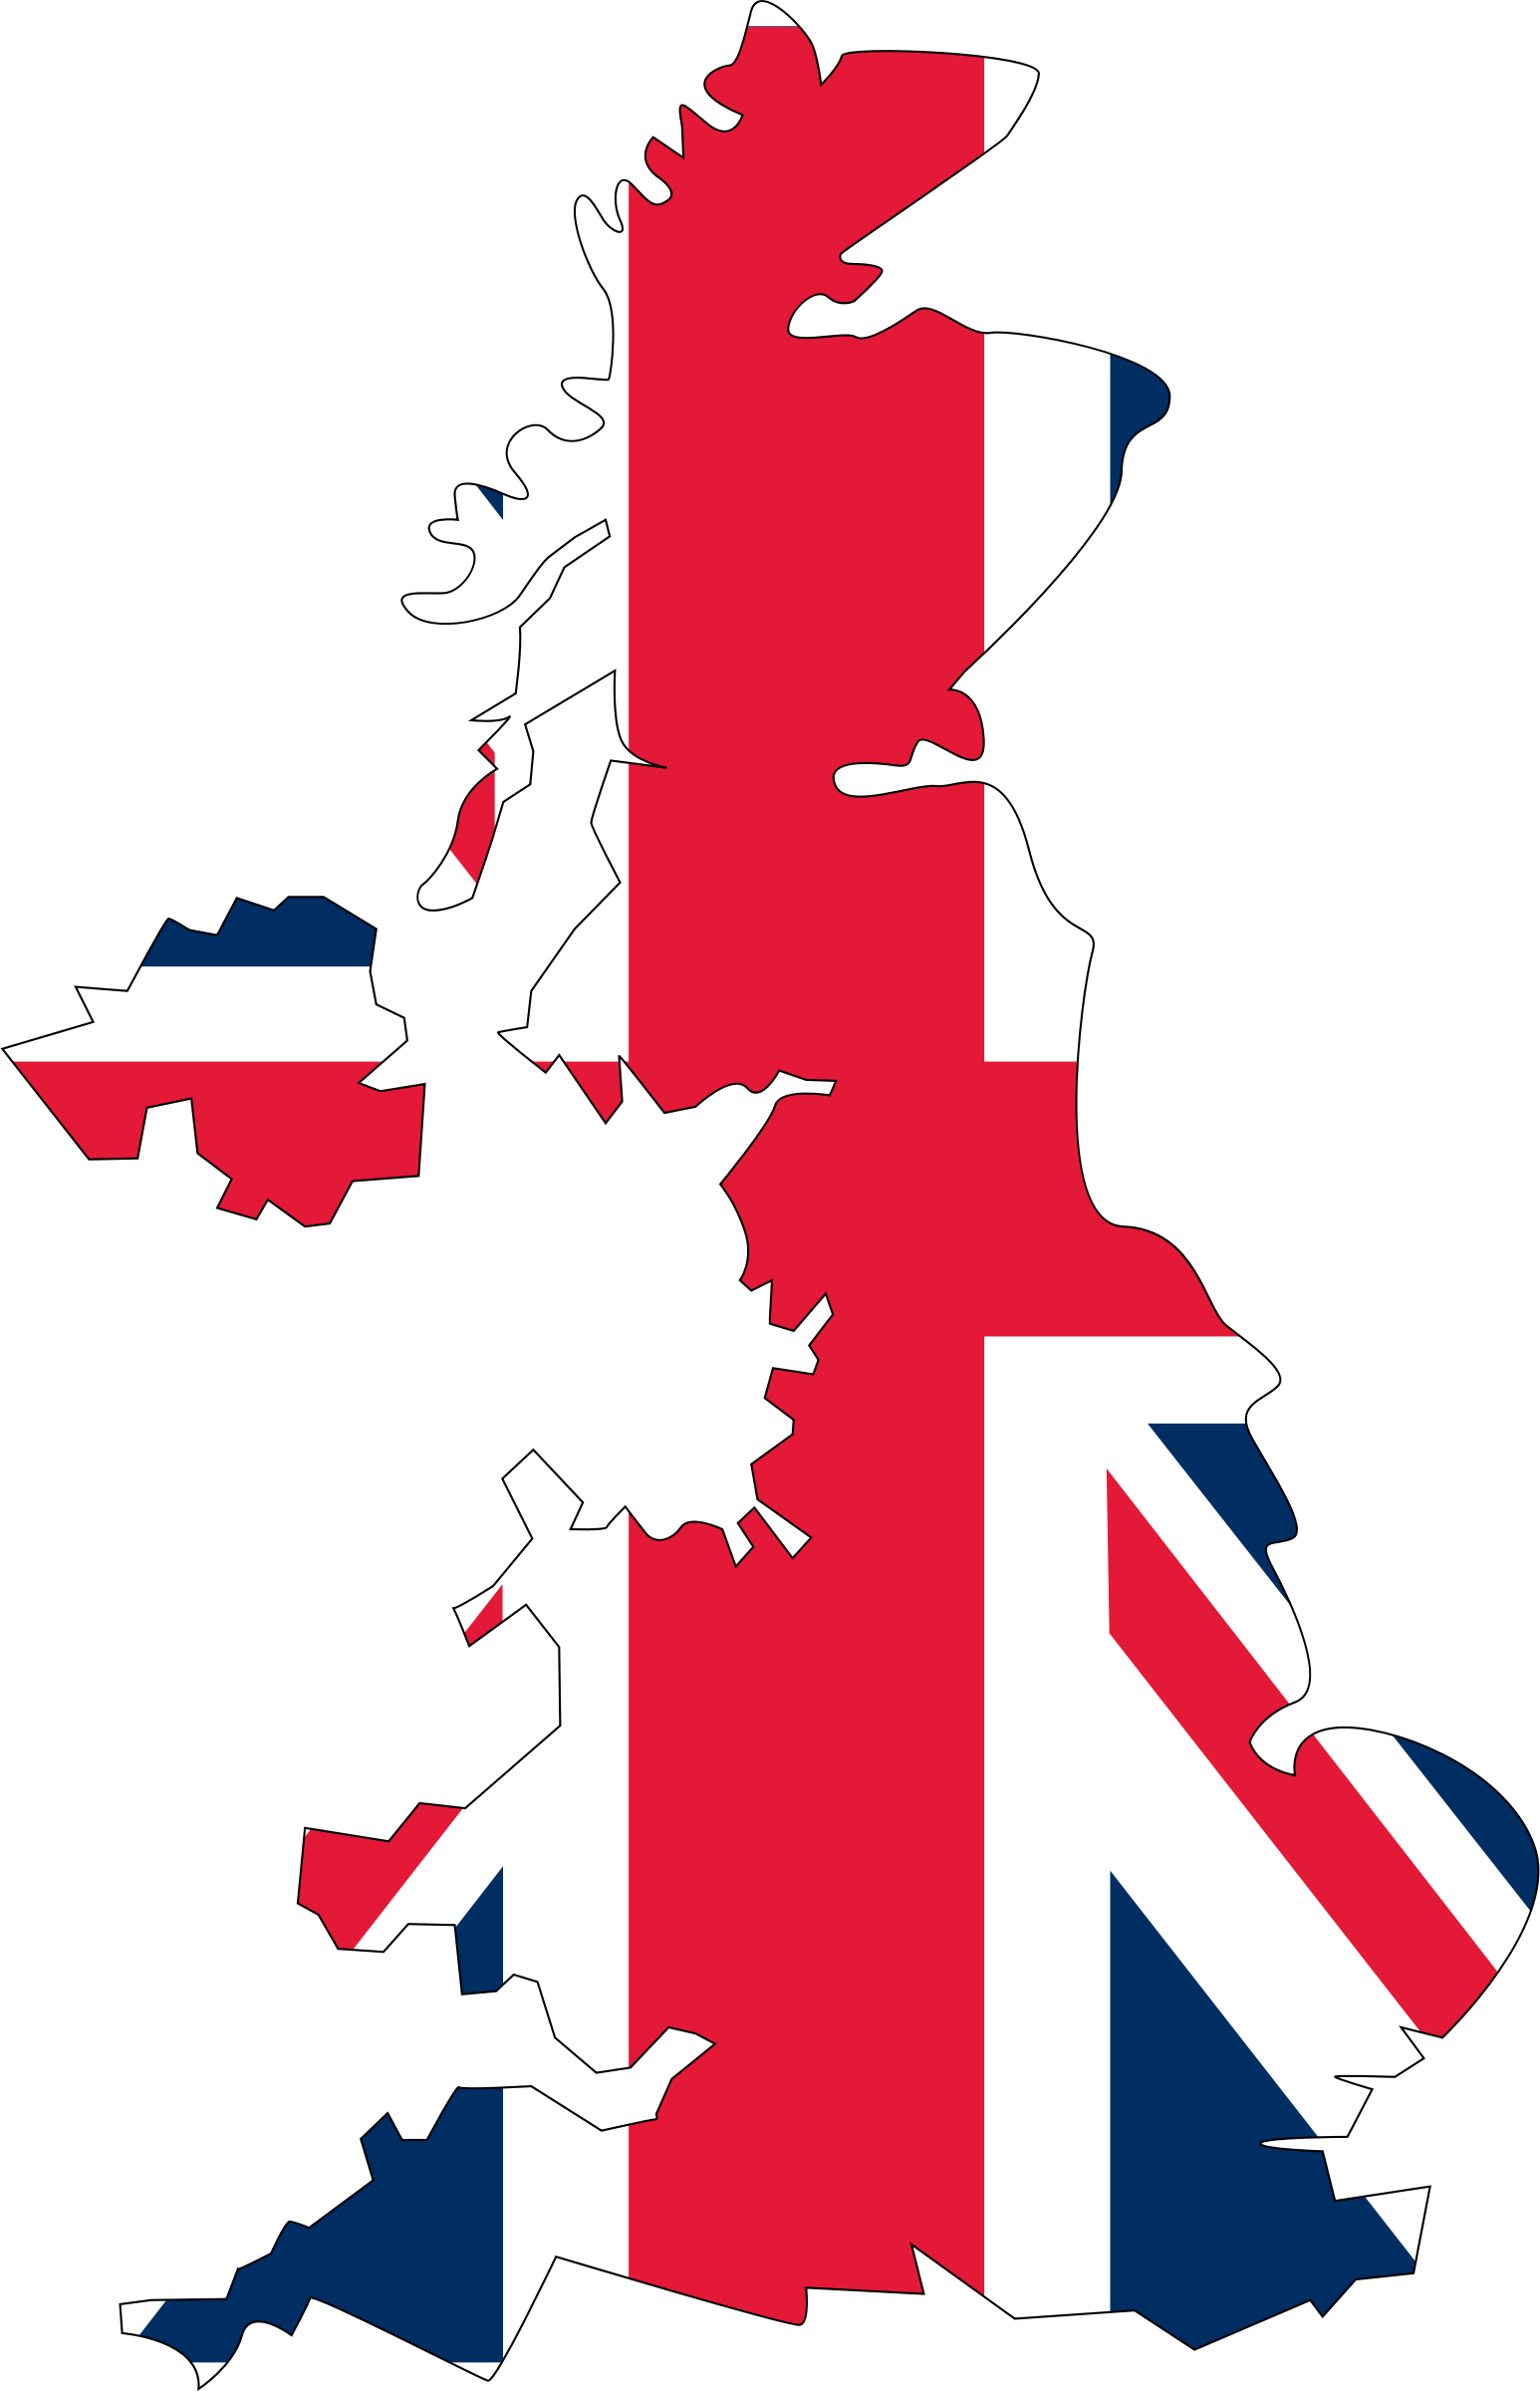 United Kingdom Flag Map by GDJ